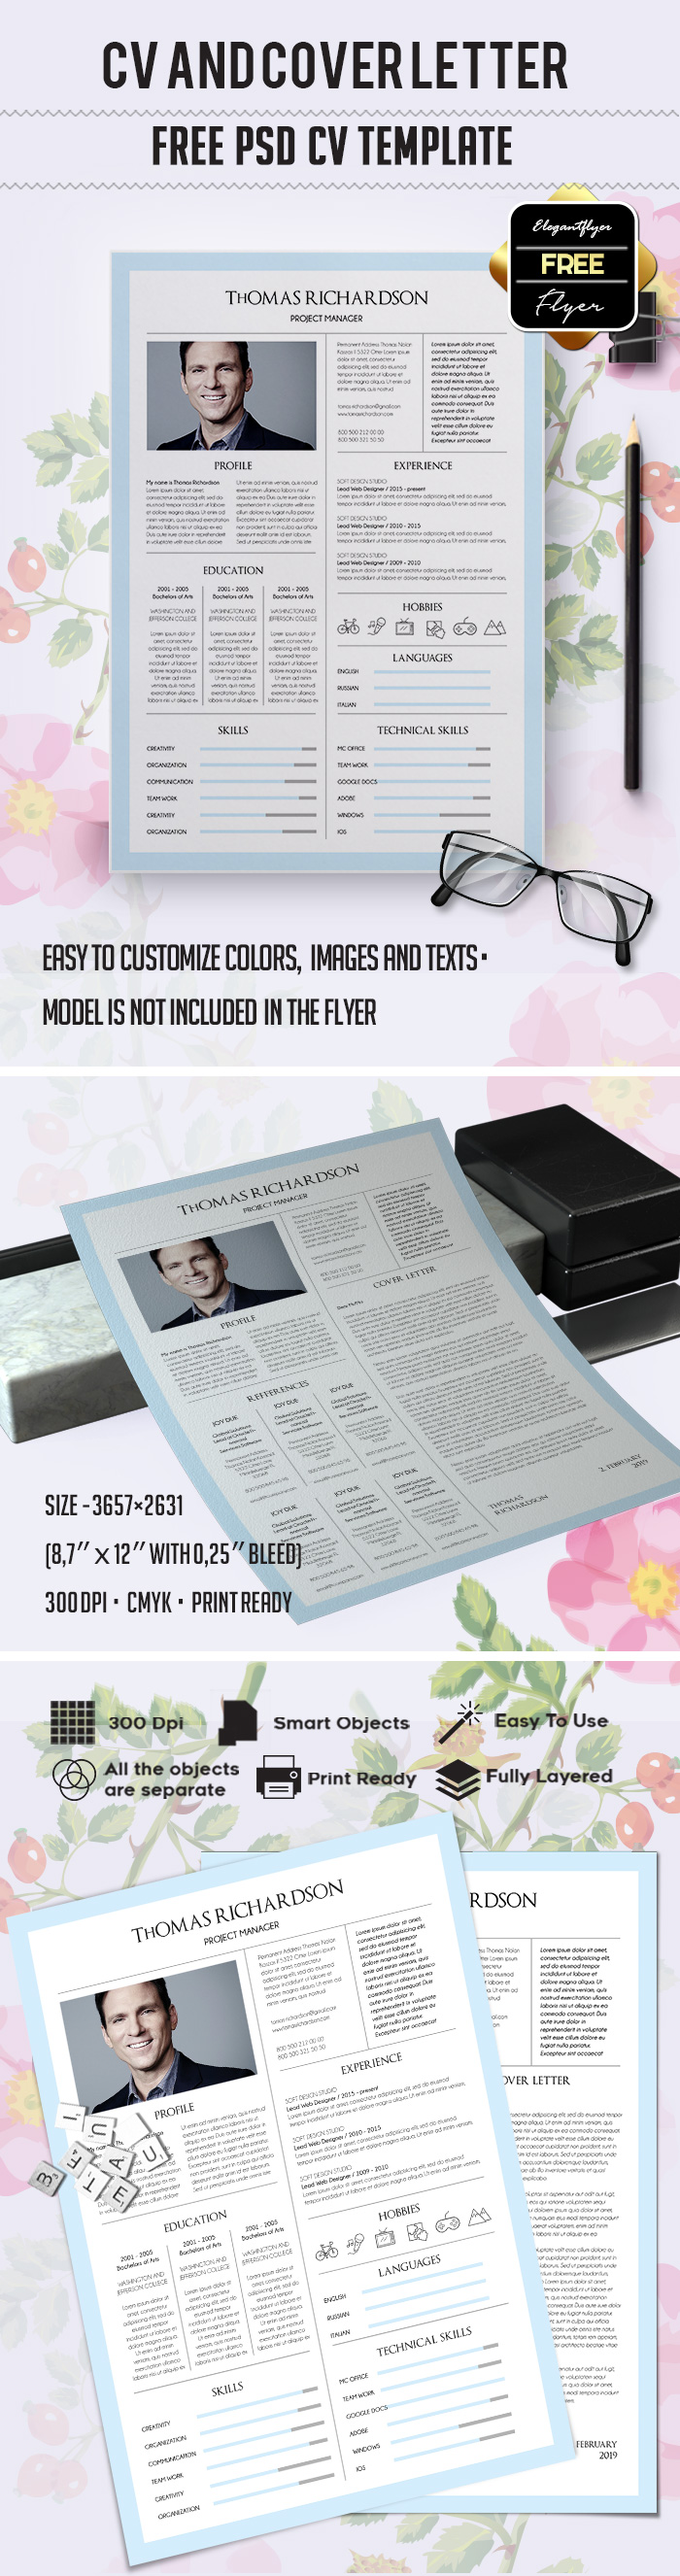 Free Printable Resume Template in PSD